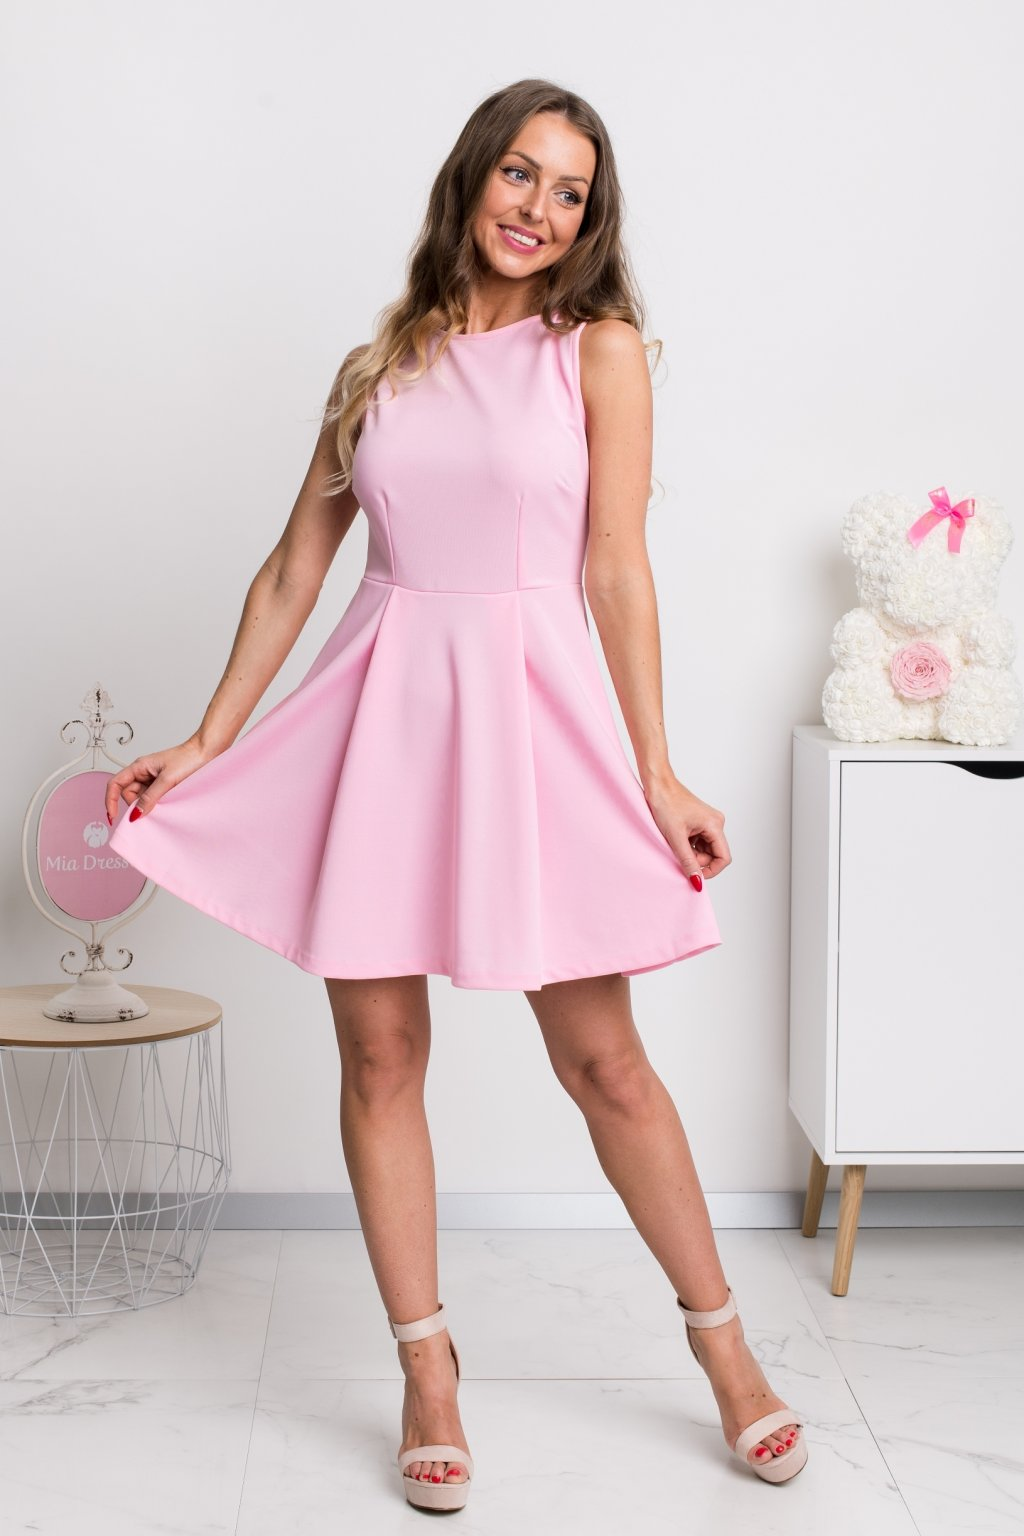 Light pink a-line mini dress